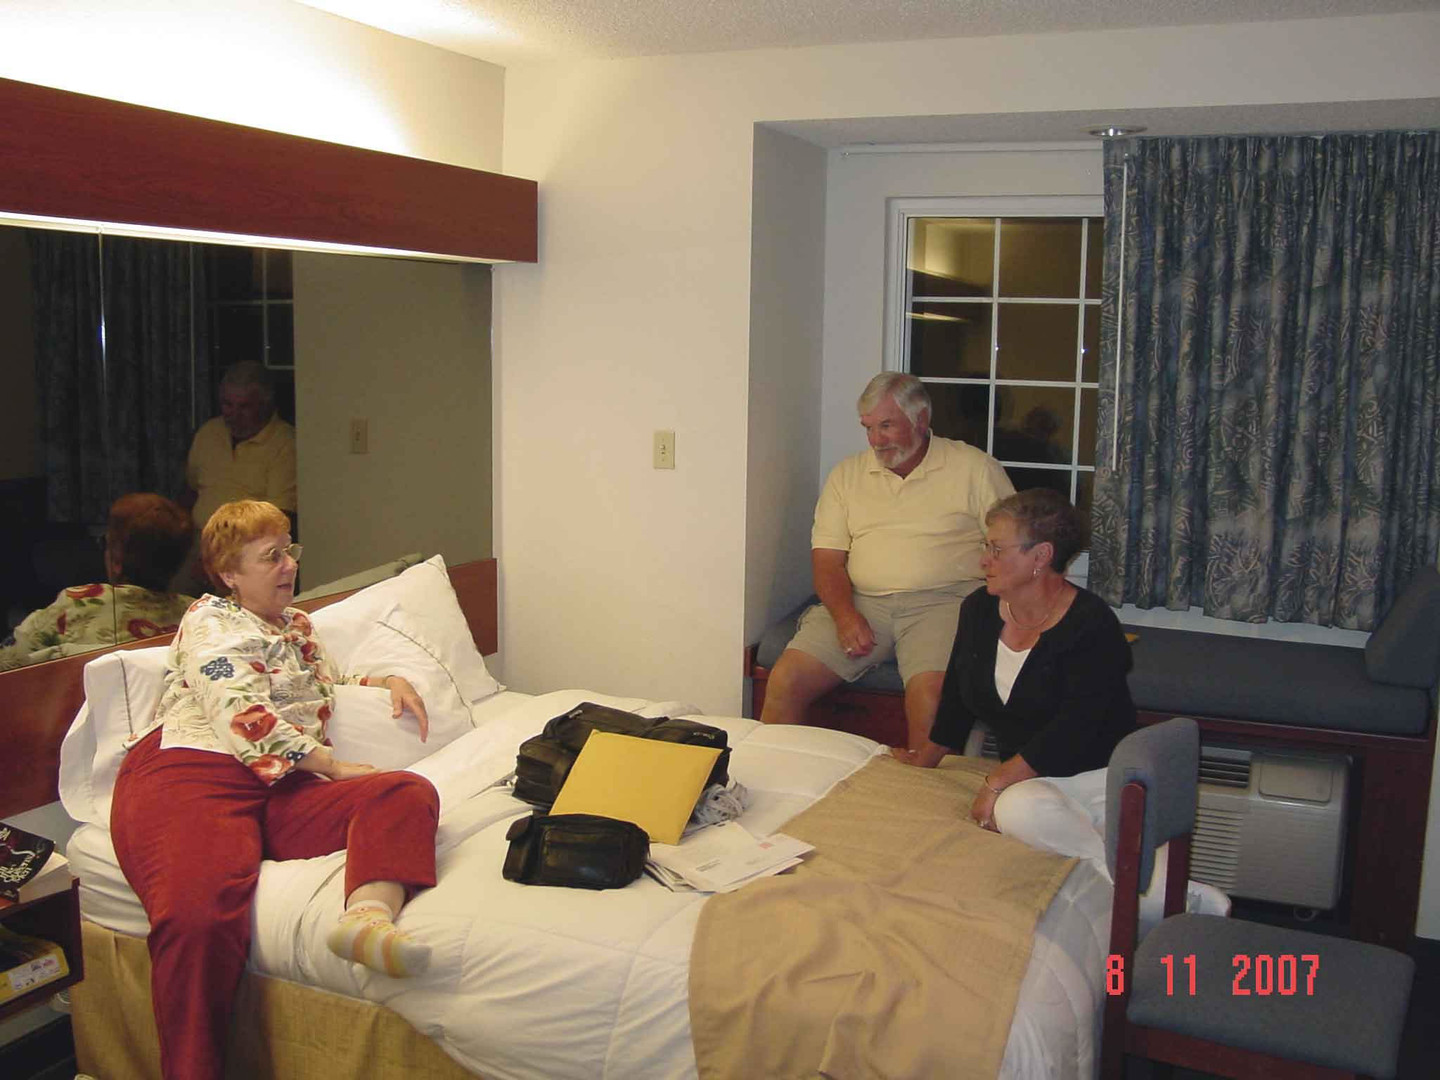 Ann Holland, Donnell and Edna Hill